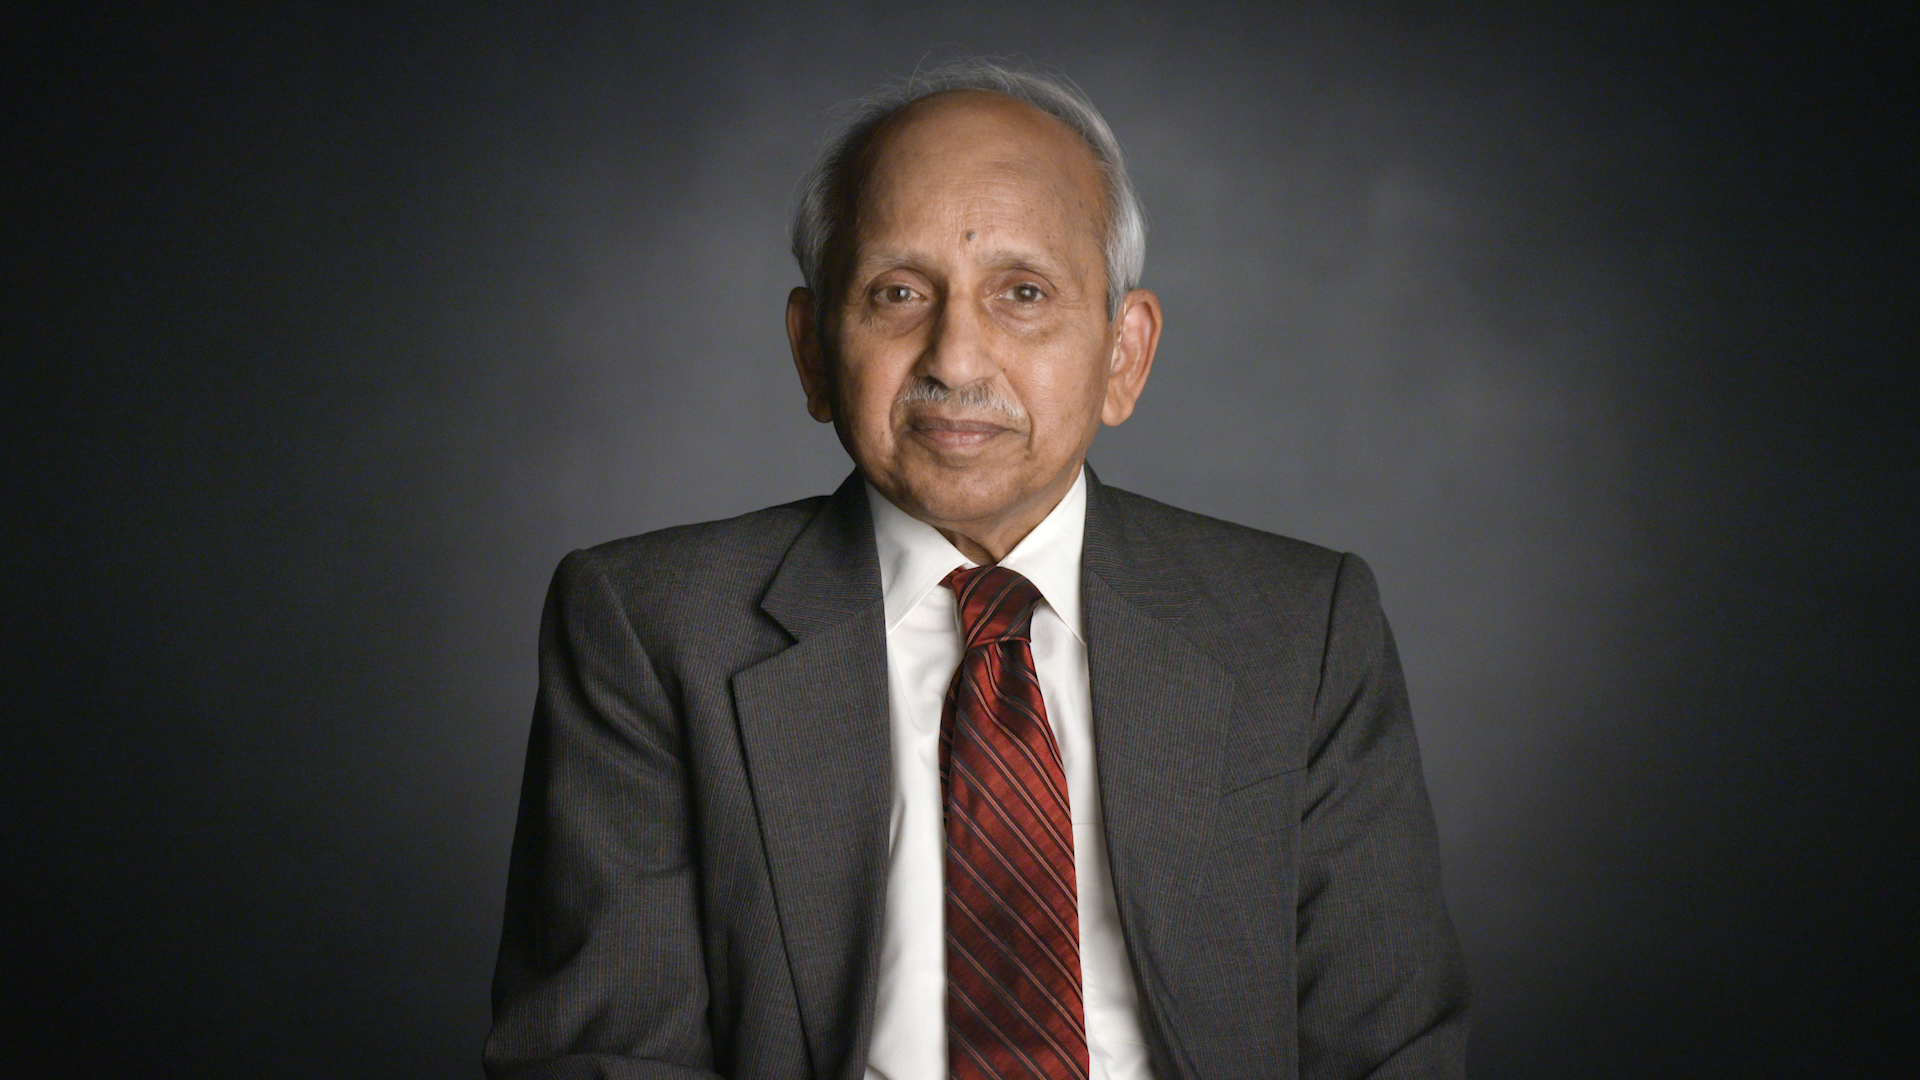 Ratnam Chitturi   Founder of the North South Foundation